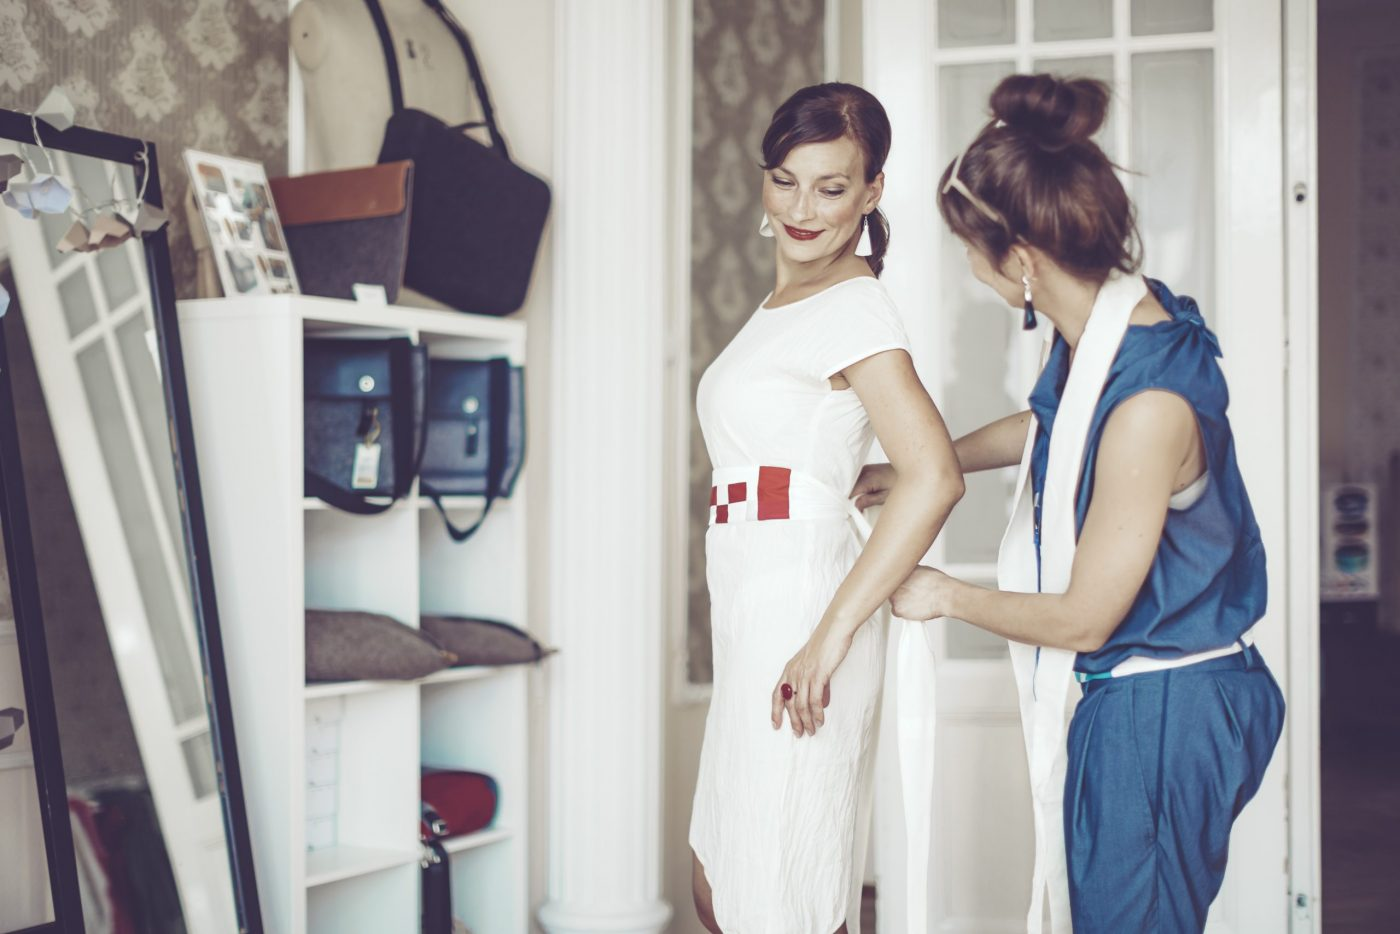 A fashion designer is helping her customer who is fitting on a new dress in the showroom. Candid shot.